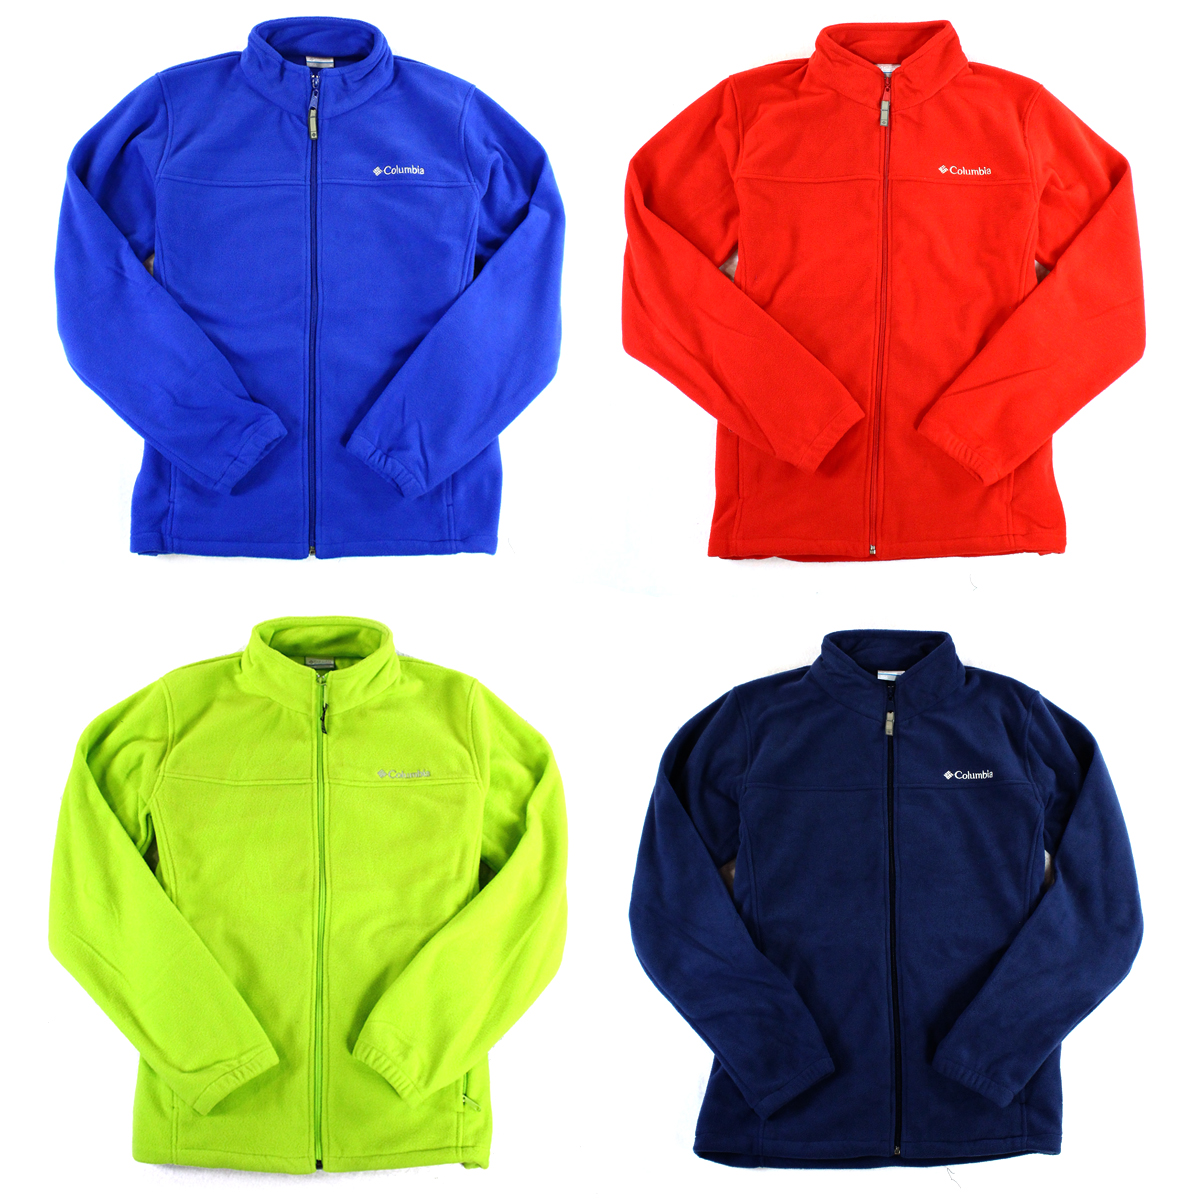 Unisex Micro Fleece Jacket. $ Quick View. ANTIMICROBIAL. FLUID BARRIER. SLIP RESISTANT. SHIPS FREE. Women's Warm Terrain Zip Up Solid Scrub Jacket. $ Quick View. ANTIMICROBIAL. FLUID BARRIER. SLIP RESISTANT. SHIPS FREE. Shop women's scrub jackets in a rainbow of solid colors and a variety of styles! Related Searches.